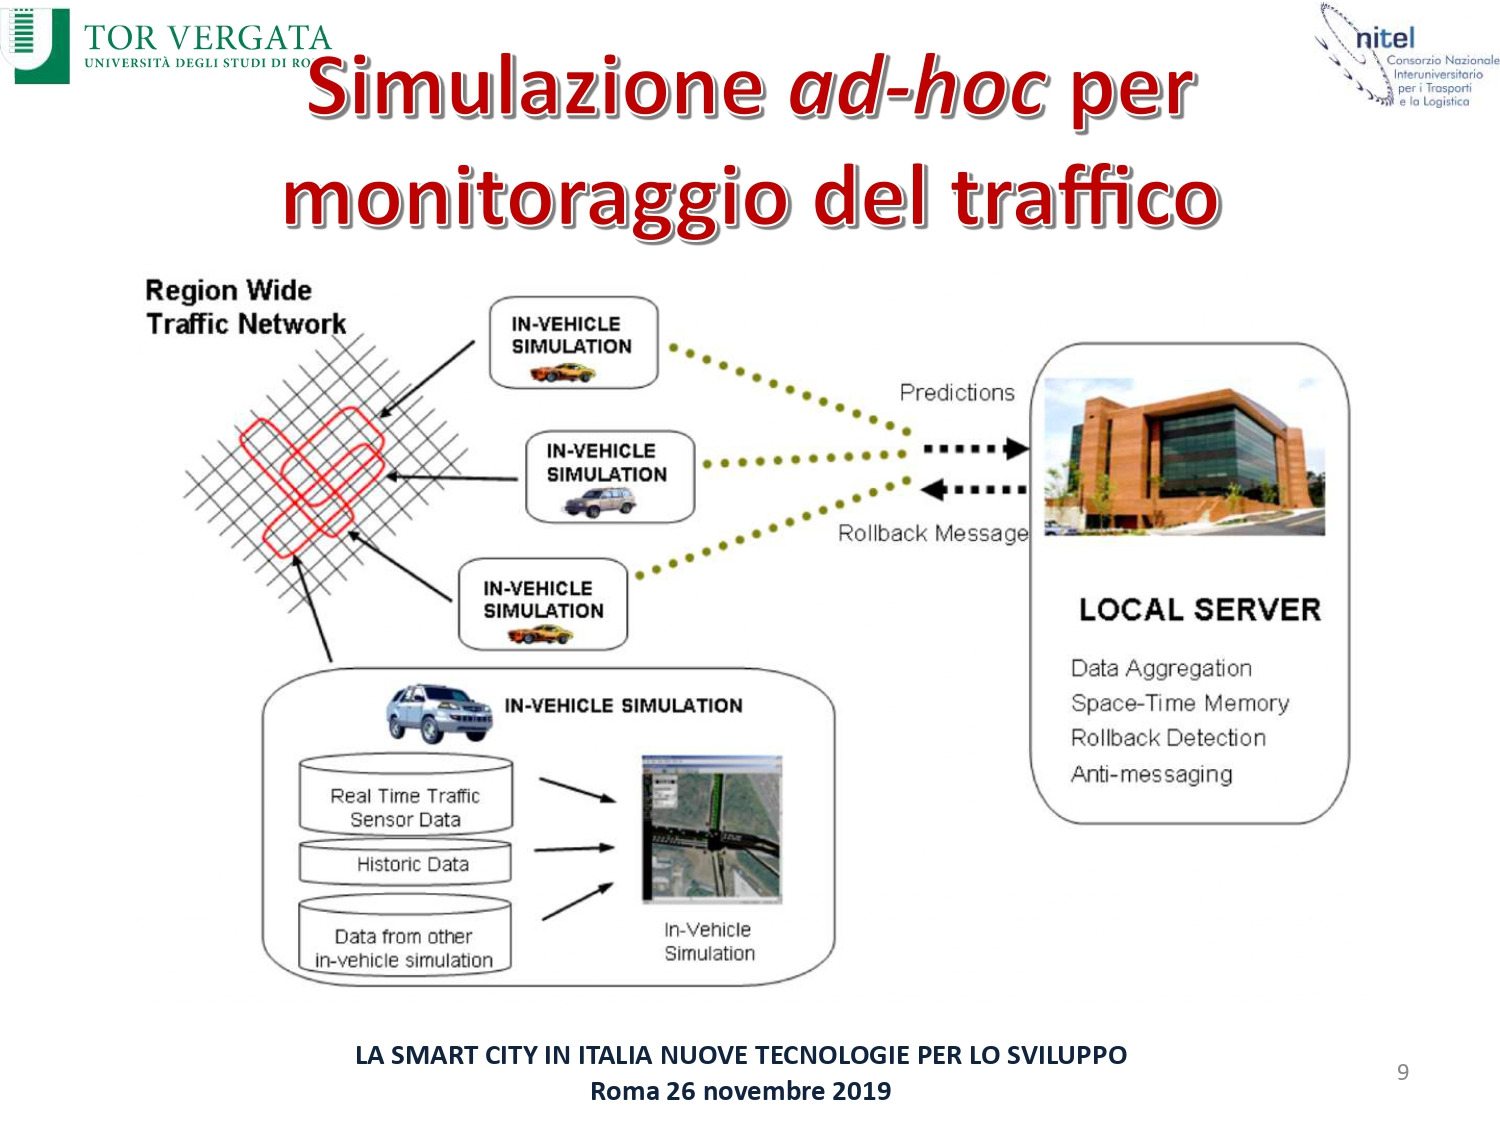 Smart city 26 novembre 2019 dambrogio_page-0008